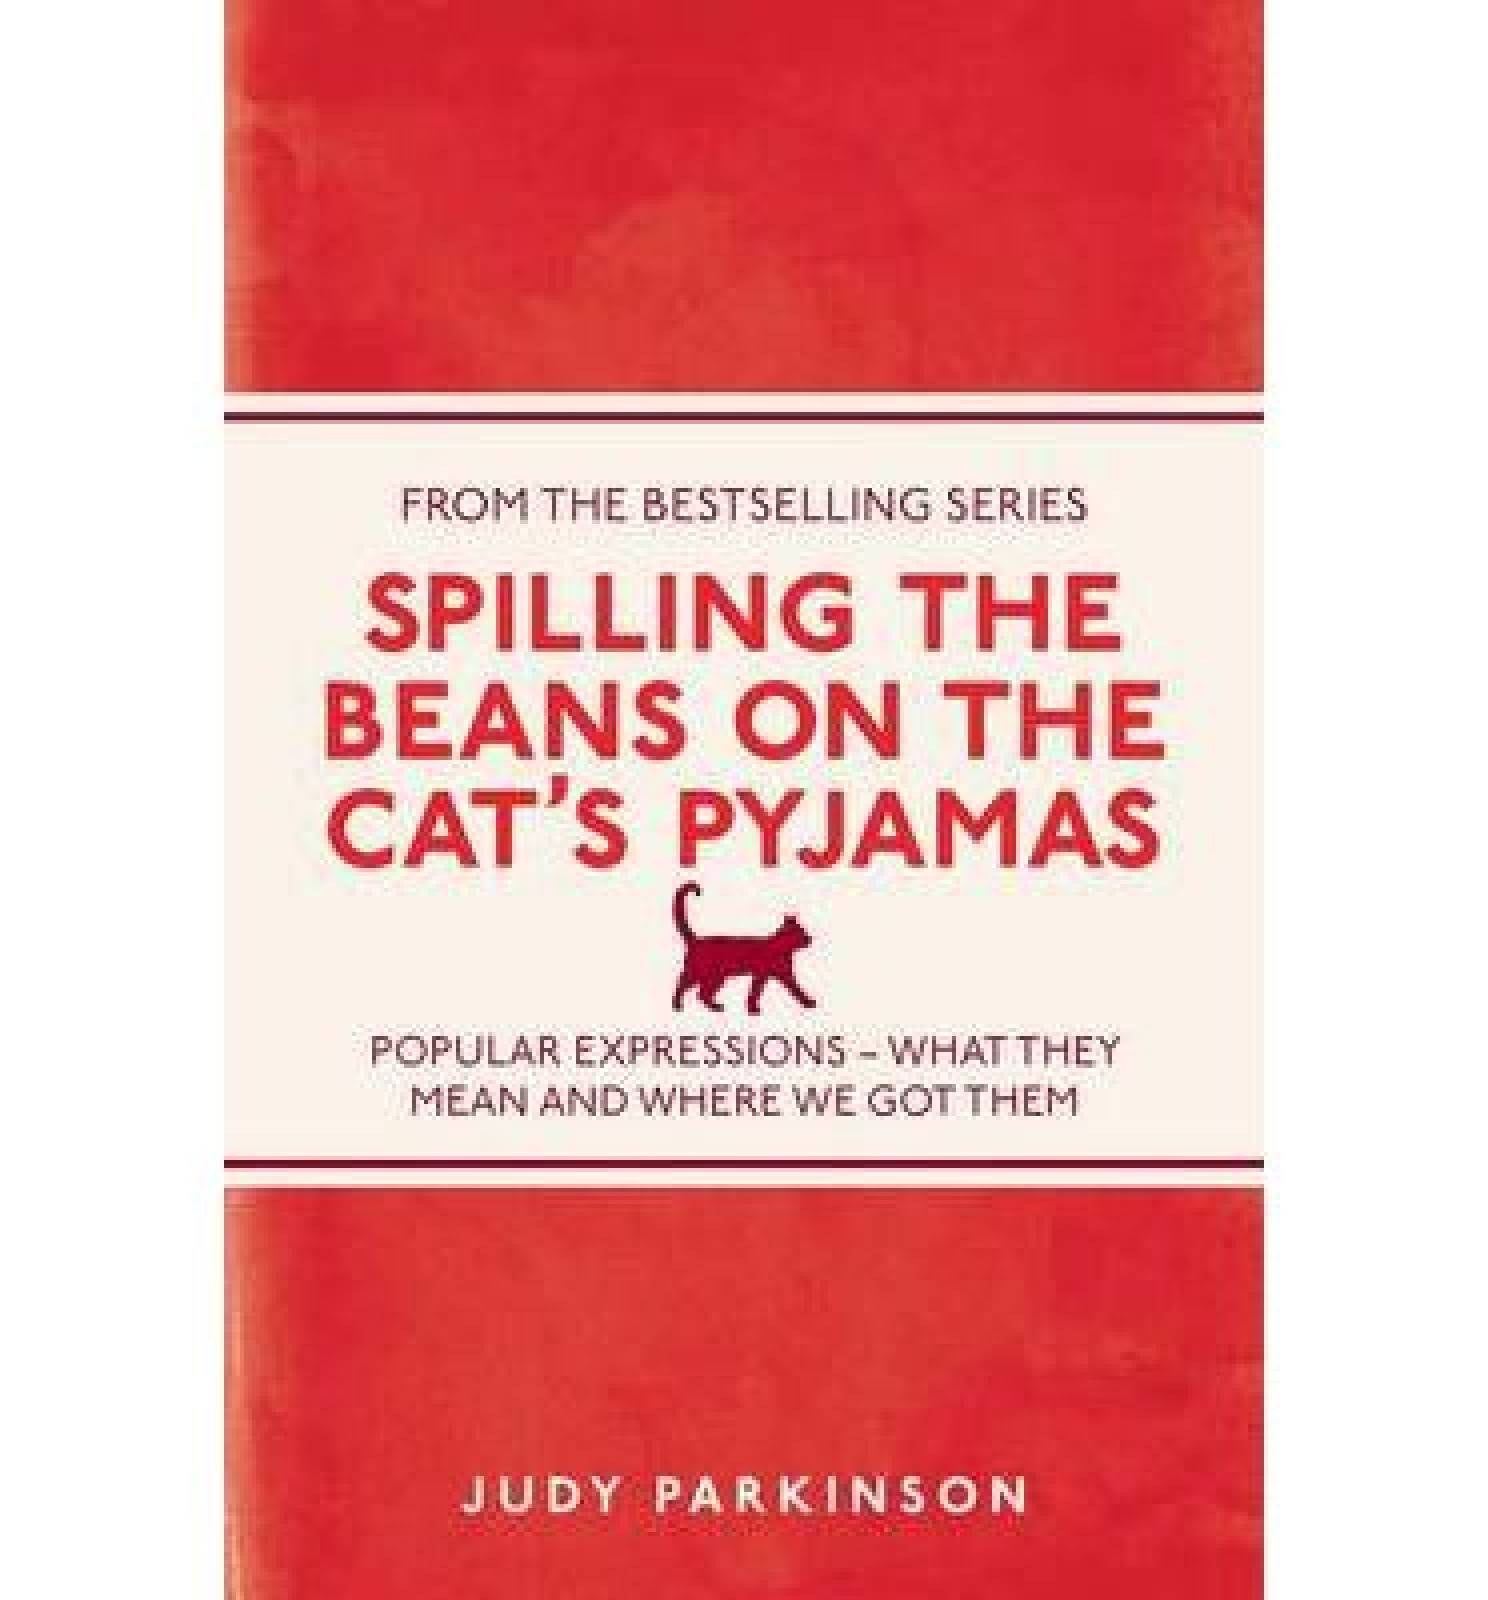 Spilling The Beans On The Cat's Pyjamas Paperback Book